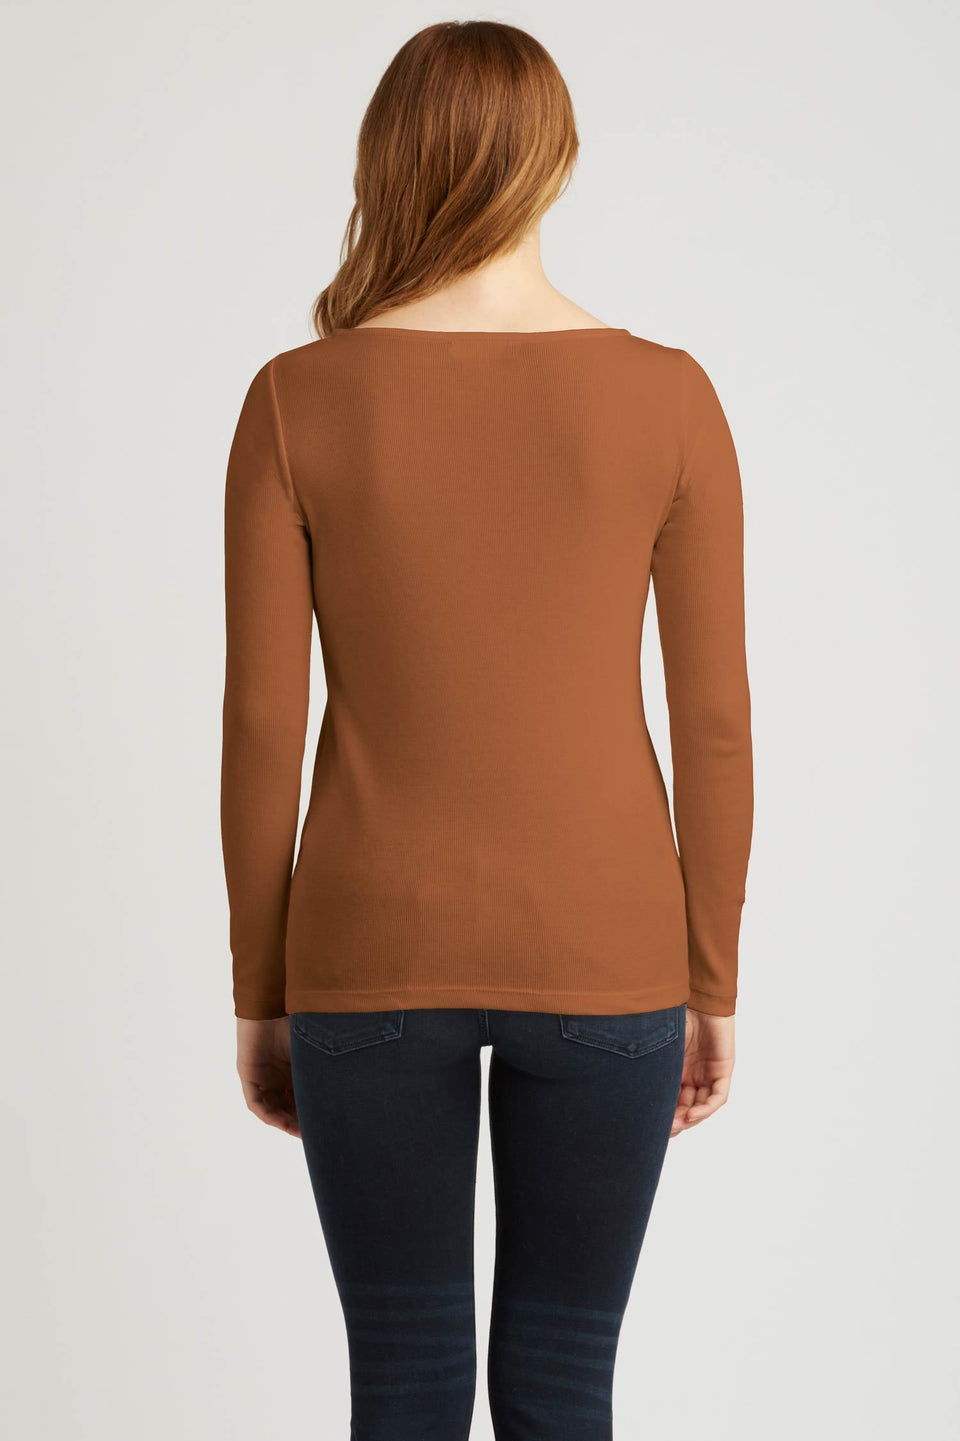 Rib Boatneck Tee in Camel